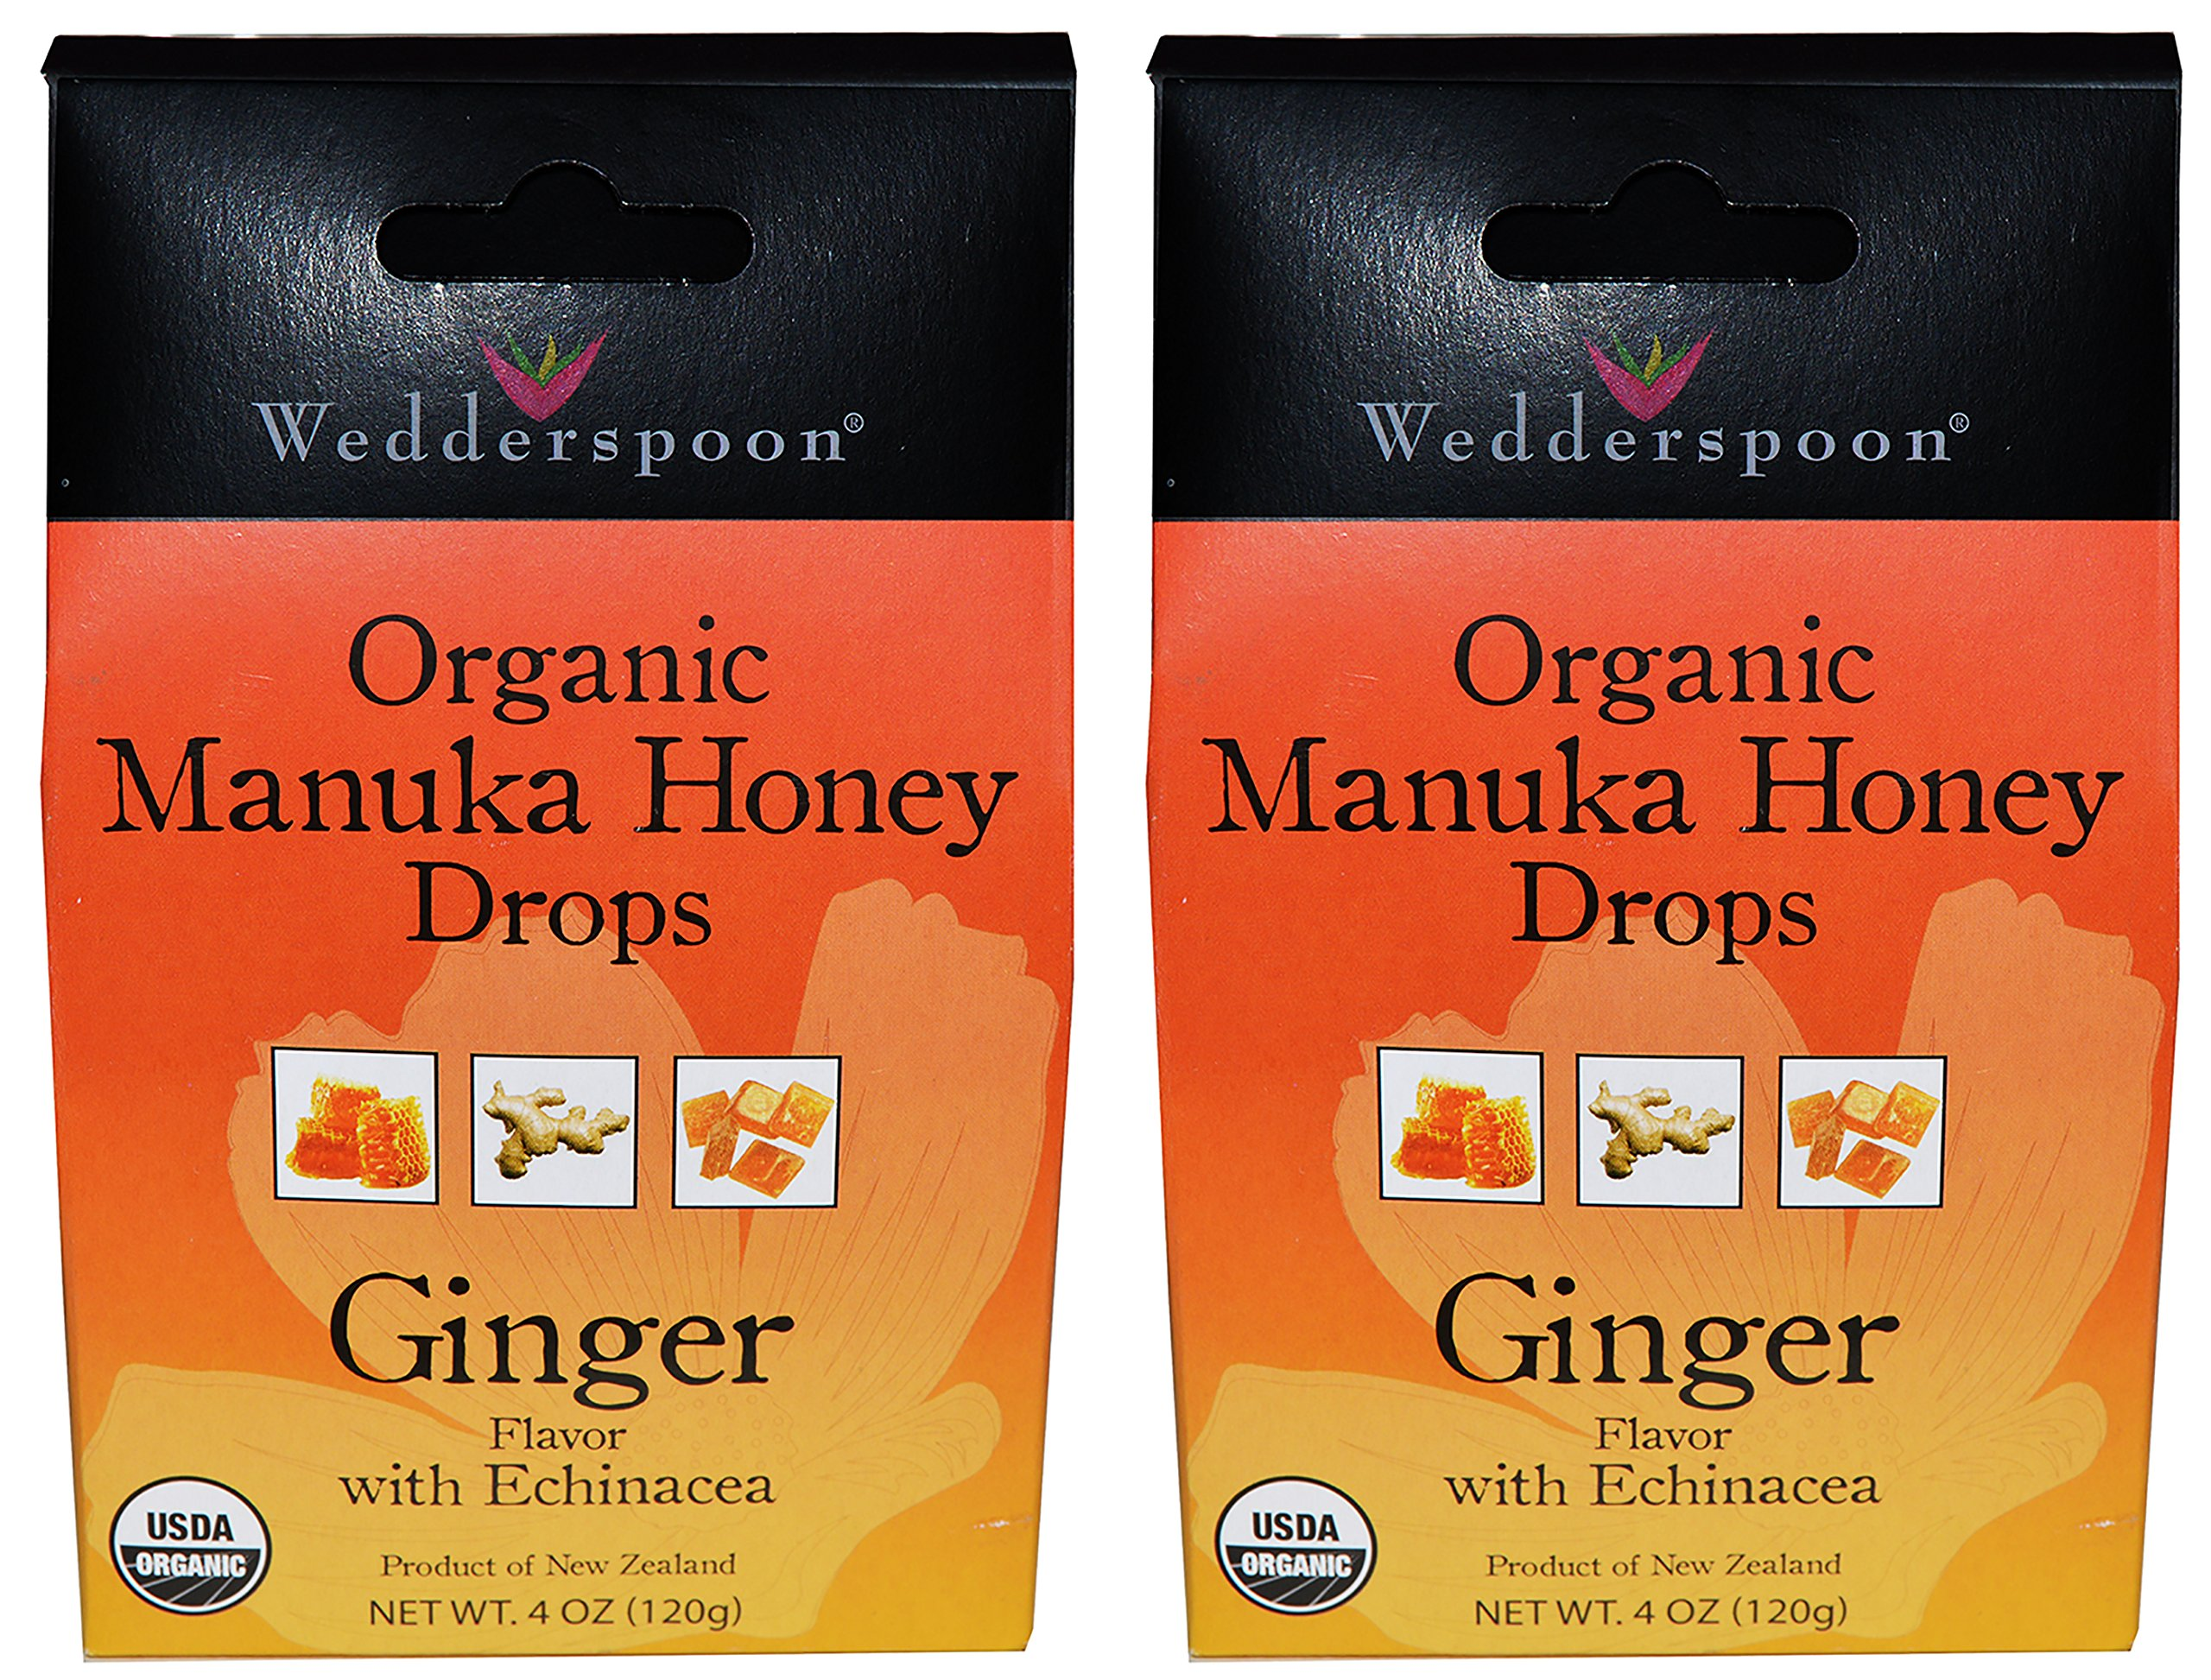 Wedderspoon Organic Manuka Honey Drops (Ginger Pack of 2)